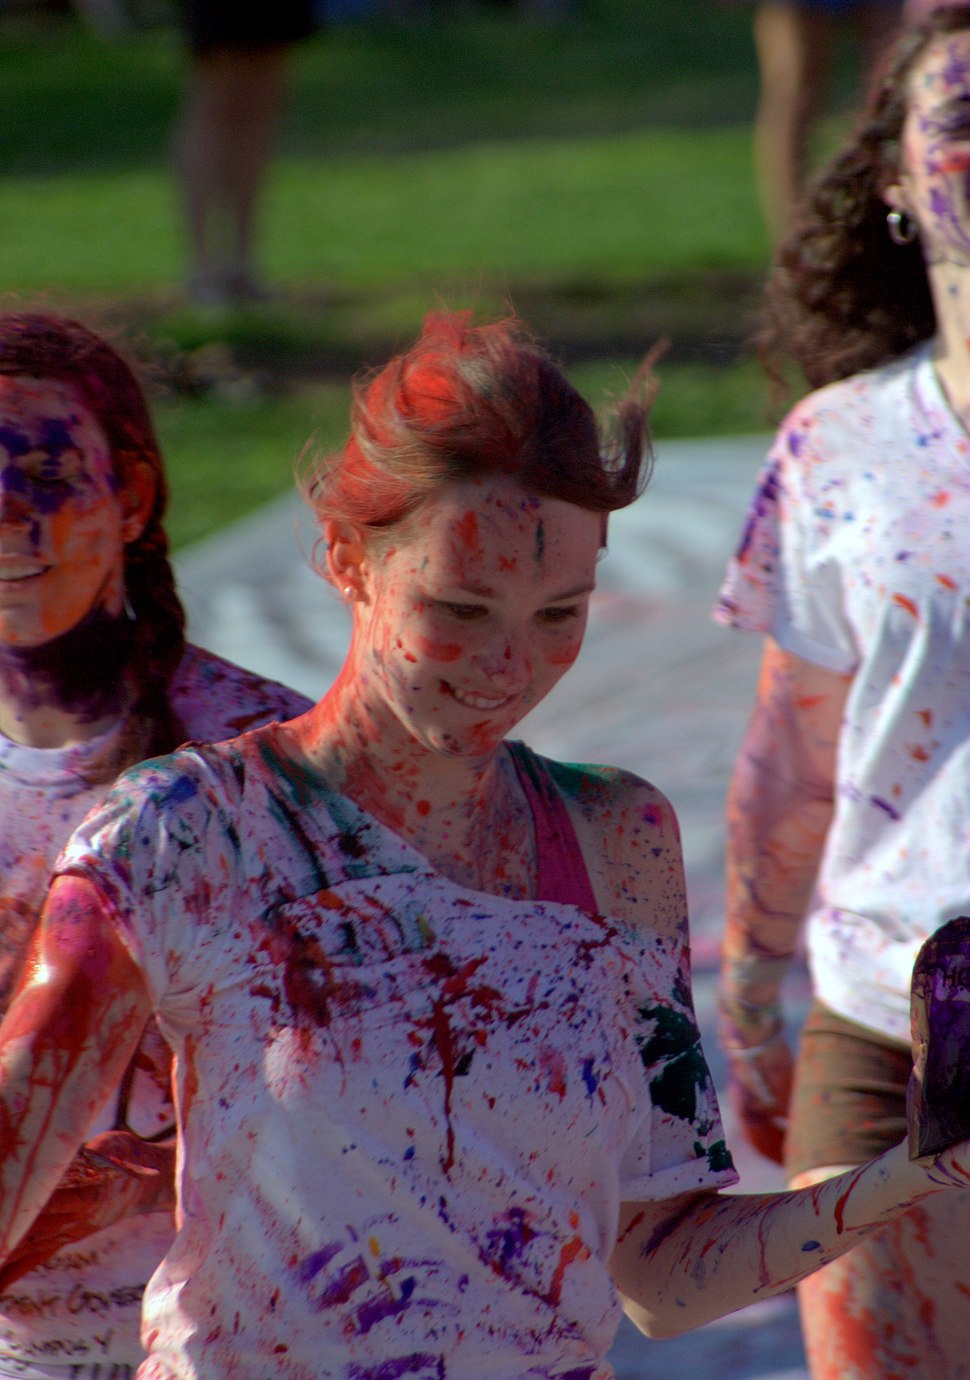 A celebration of Holi festival at UNC college campus United States, March 2011